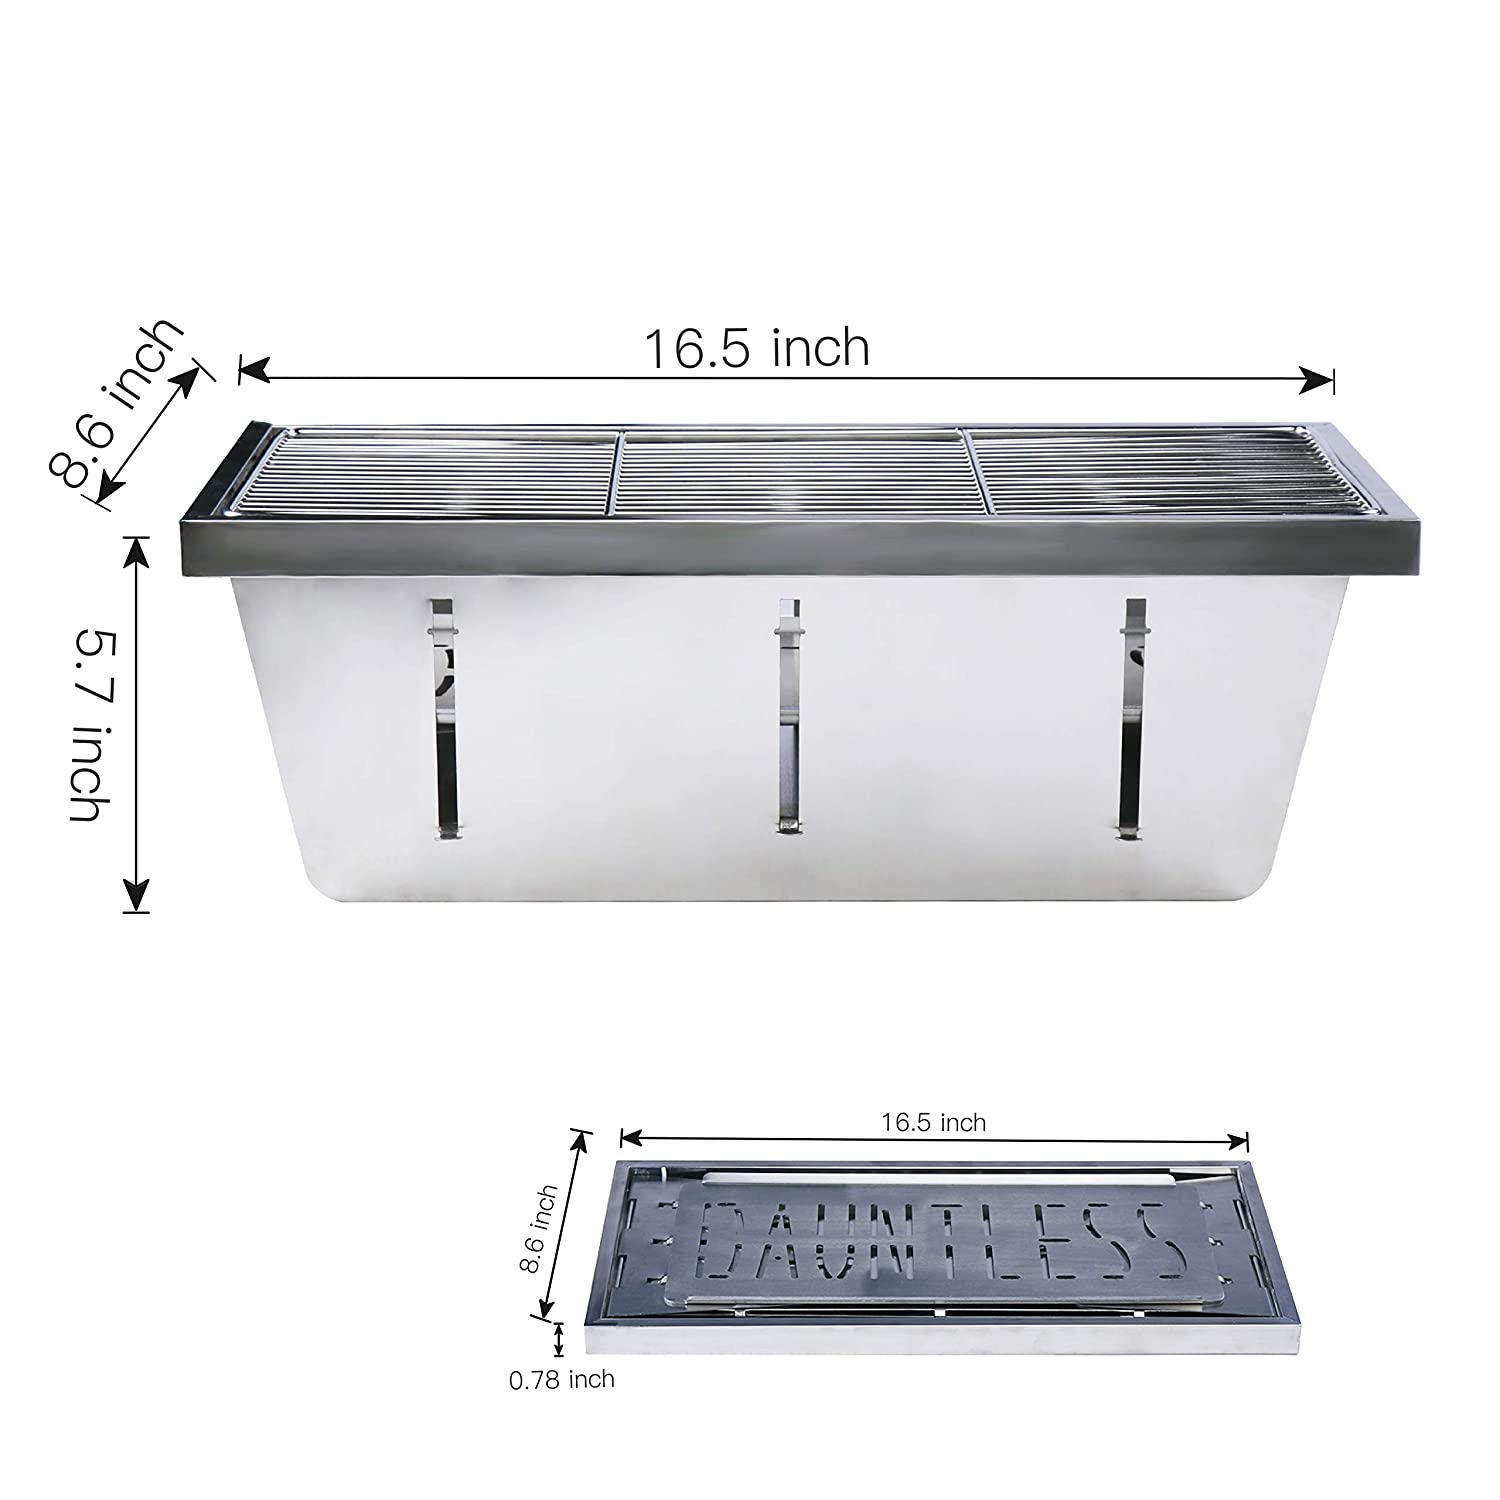 DAUNTLESS 304 Stainless Steel Food Grade Portable Charcoal Barbecue Grills, Foldable Grill Smoker Box for Outdoor Grill, Camping Grill and Backyard Grill Grill